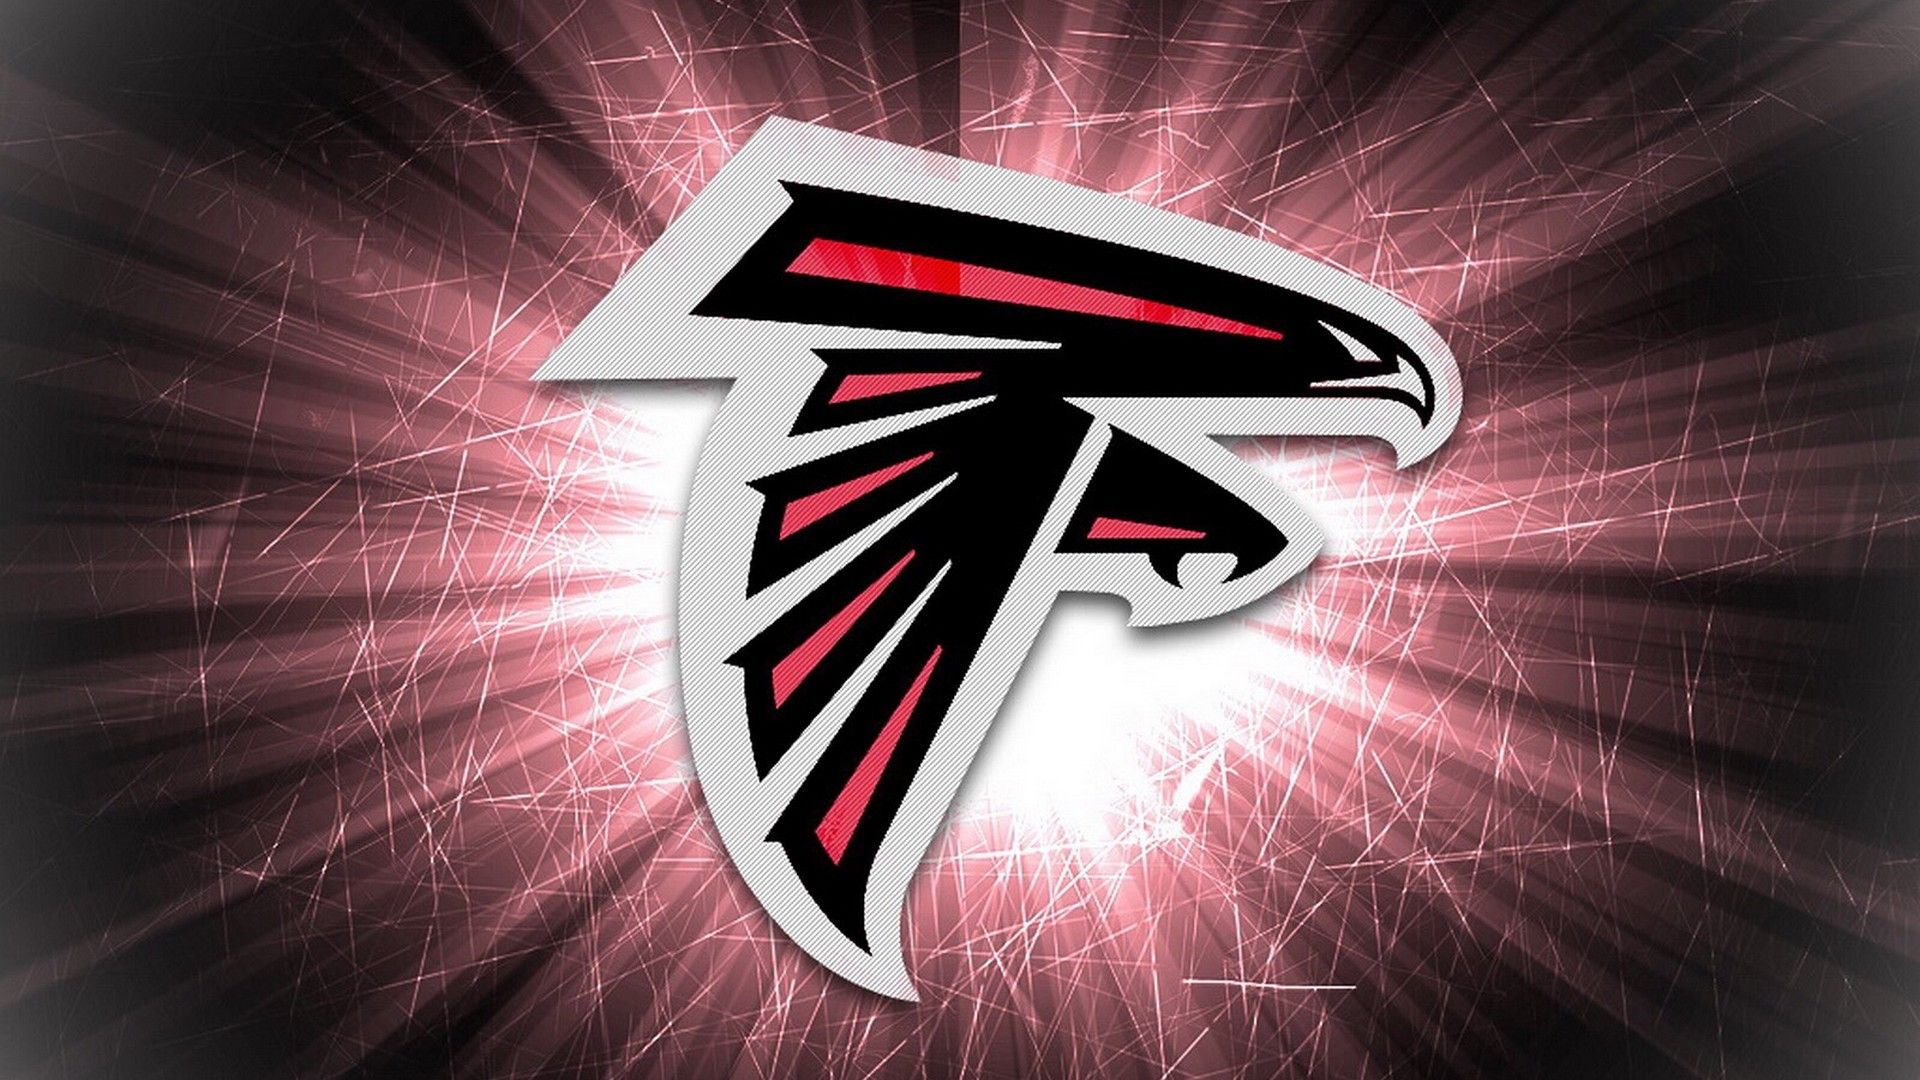 Atlanta Falcons Backgrounds Hd 2020 Nfl Football Wallpapers Atlanta Falcons Logo Atlanta Falcons Wallpaper Atlanta Falcons Background